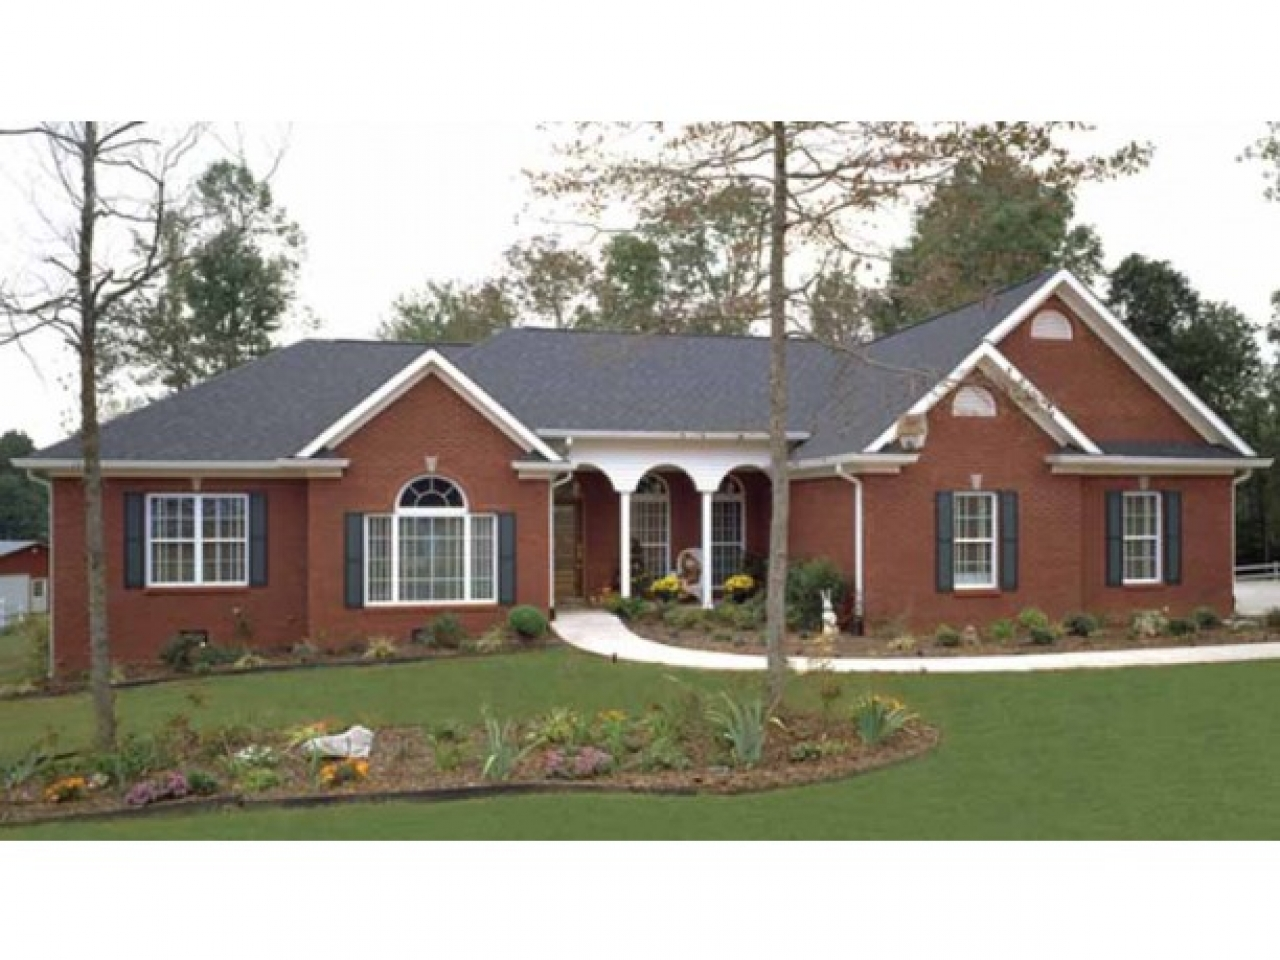 Brick ranch style house plans painted brick ranch style for Brick ranch home plans